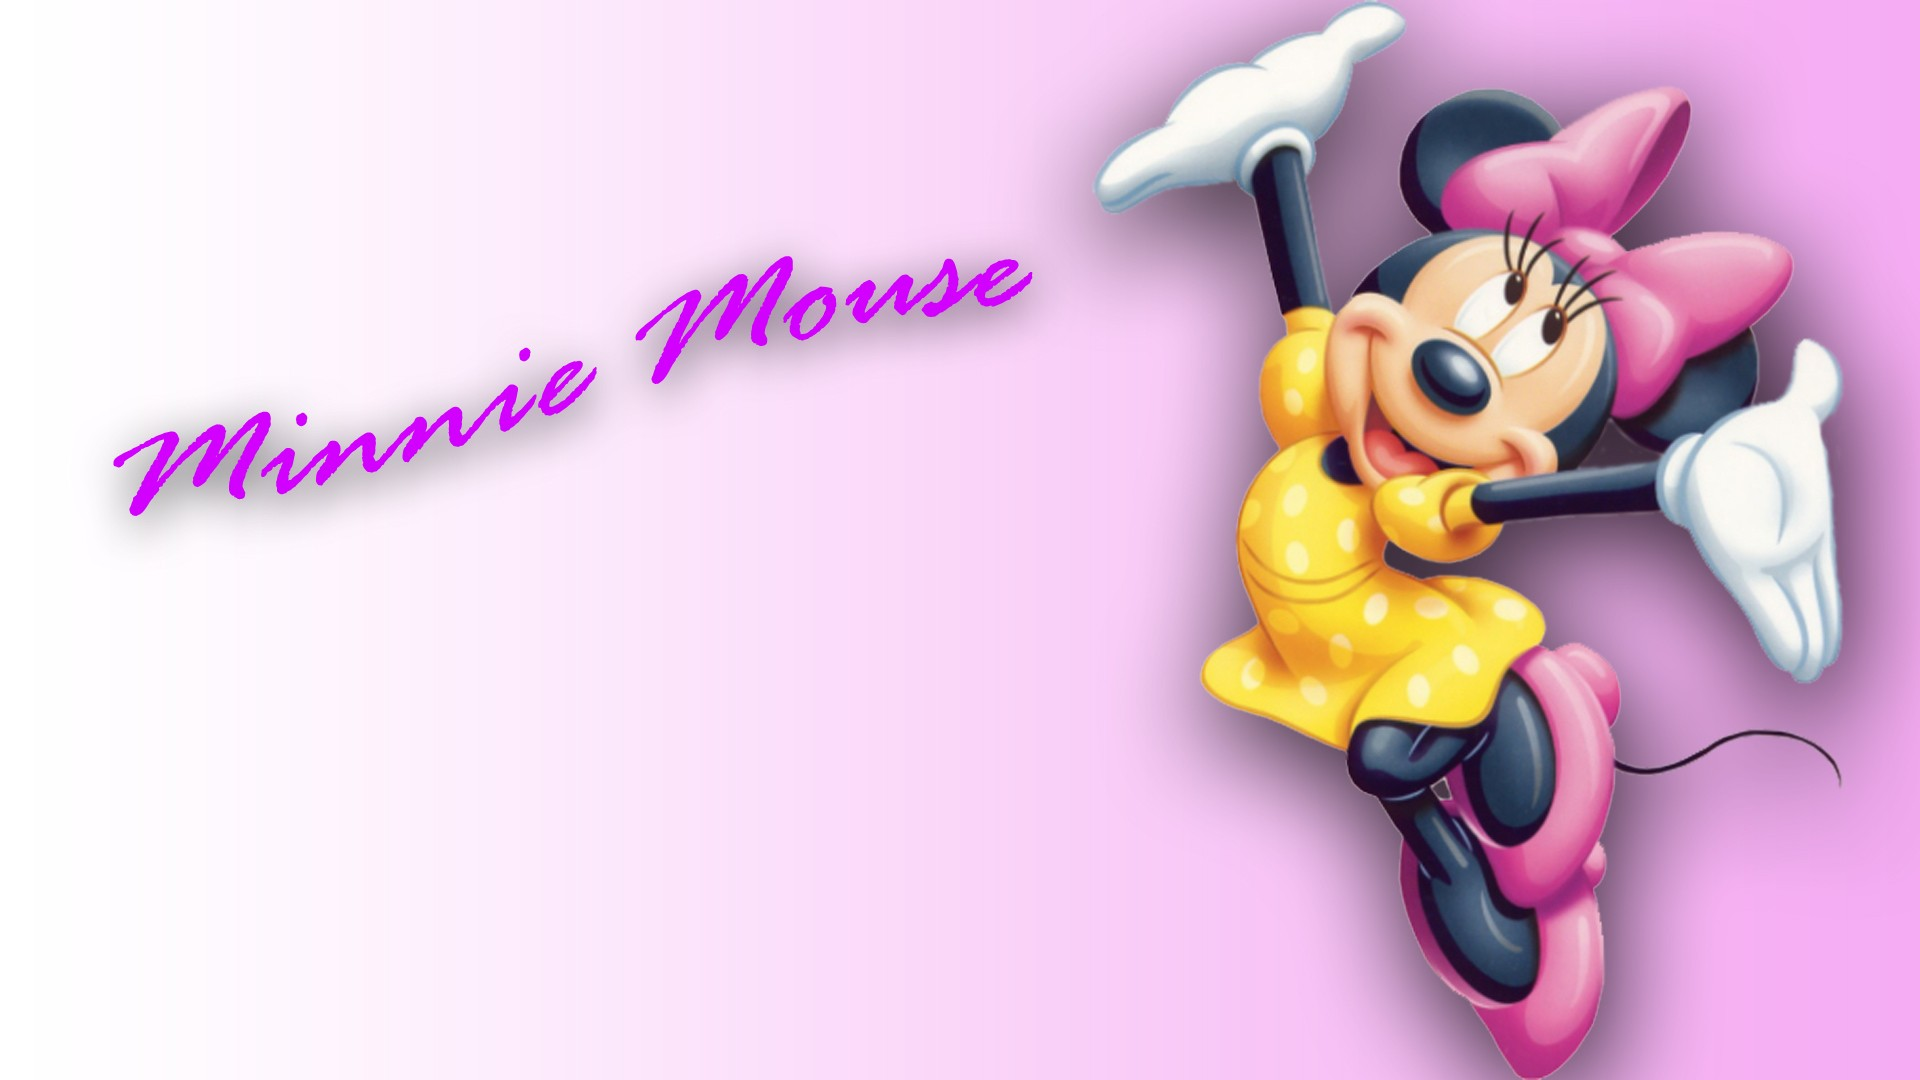 Minnie Mouse Cute Wallpaper - HD Wallpapers